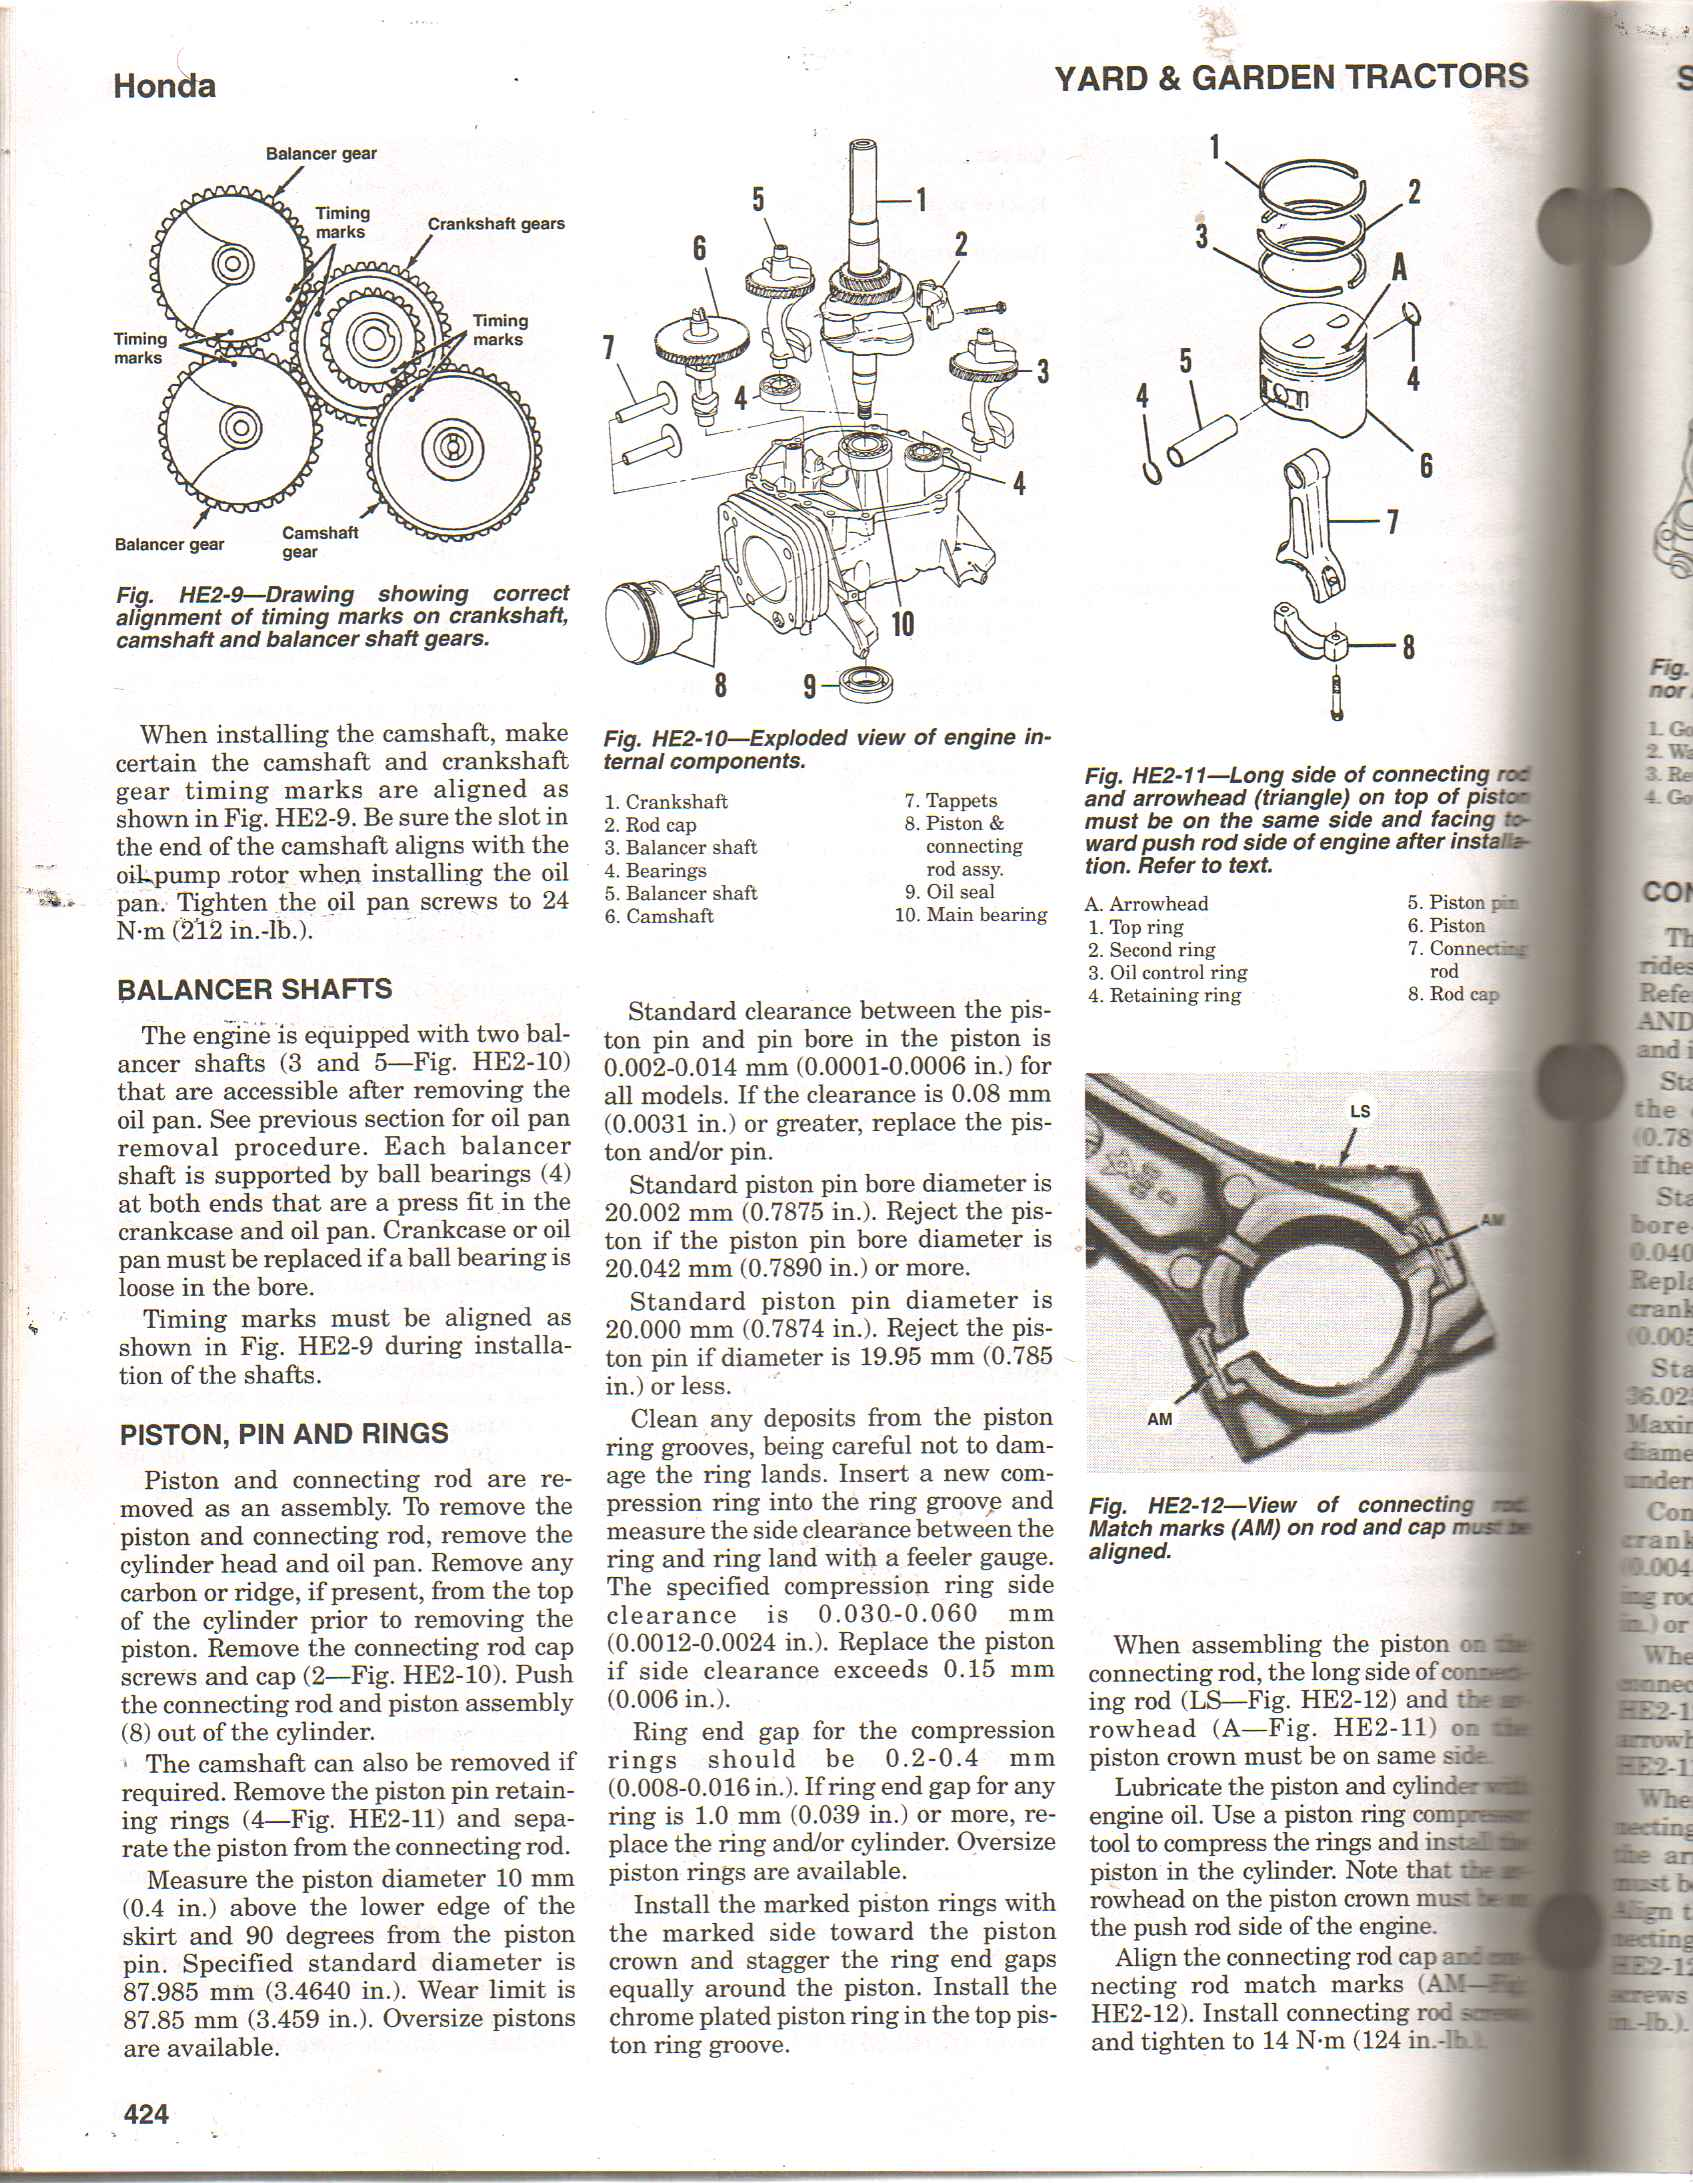 honda hrr2163vxa service manual bing images Honda Lawn Mower Model HRR2163VXA Honda Lawn Mower HRR2163VXA Diagram